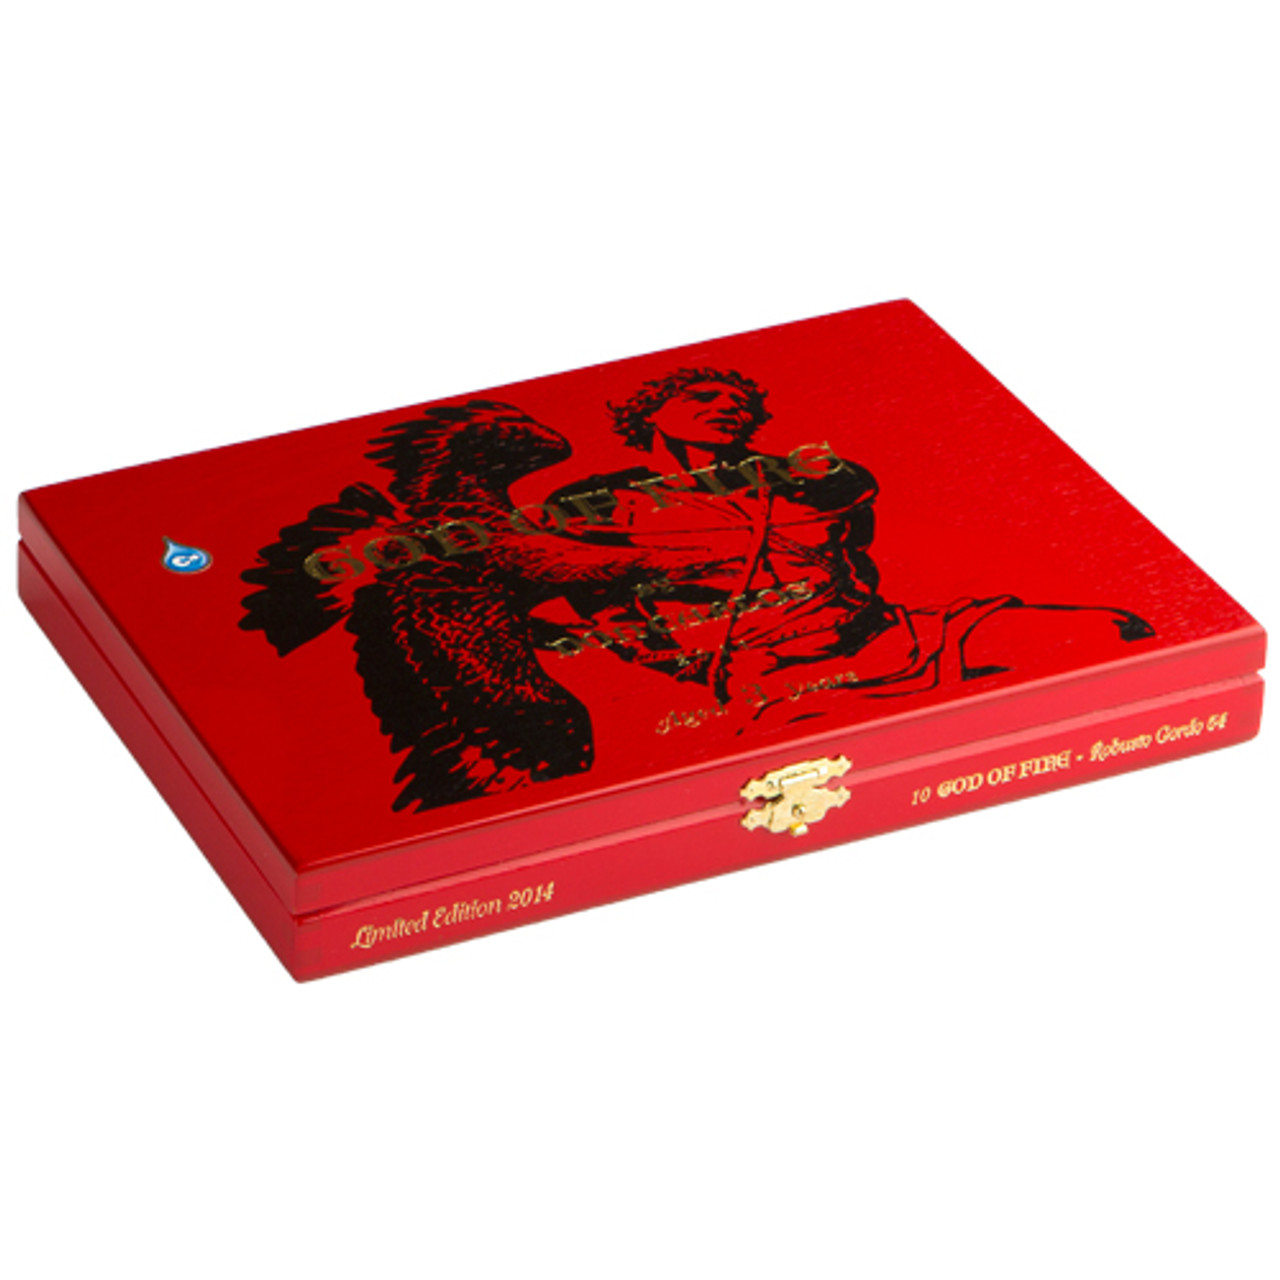 God of Fire by Don Carlos Robusto Cigars - 5.25 x 50 (Box of 10)